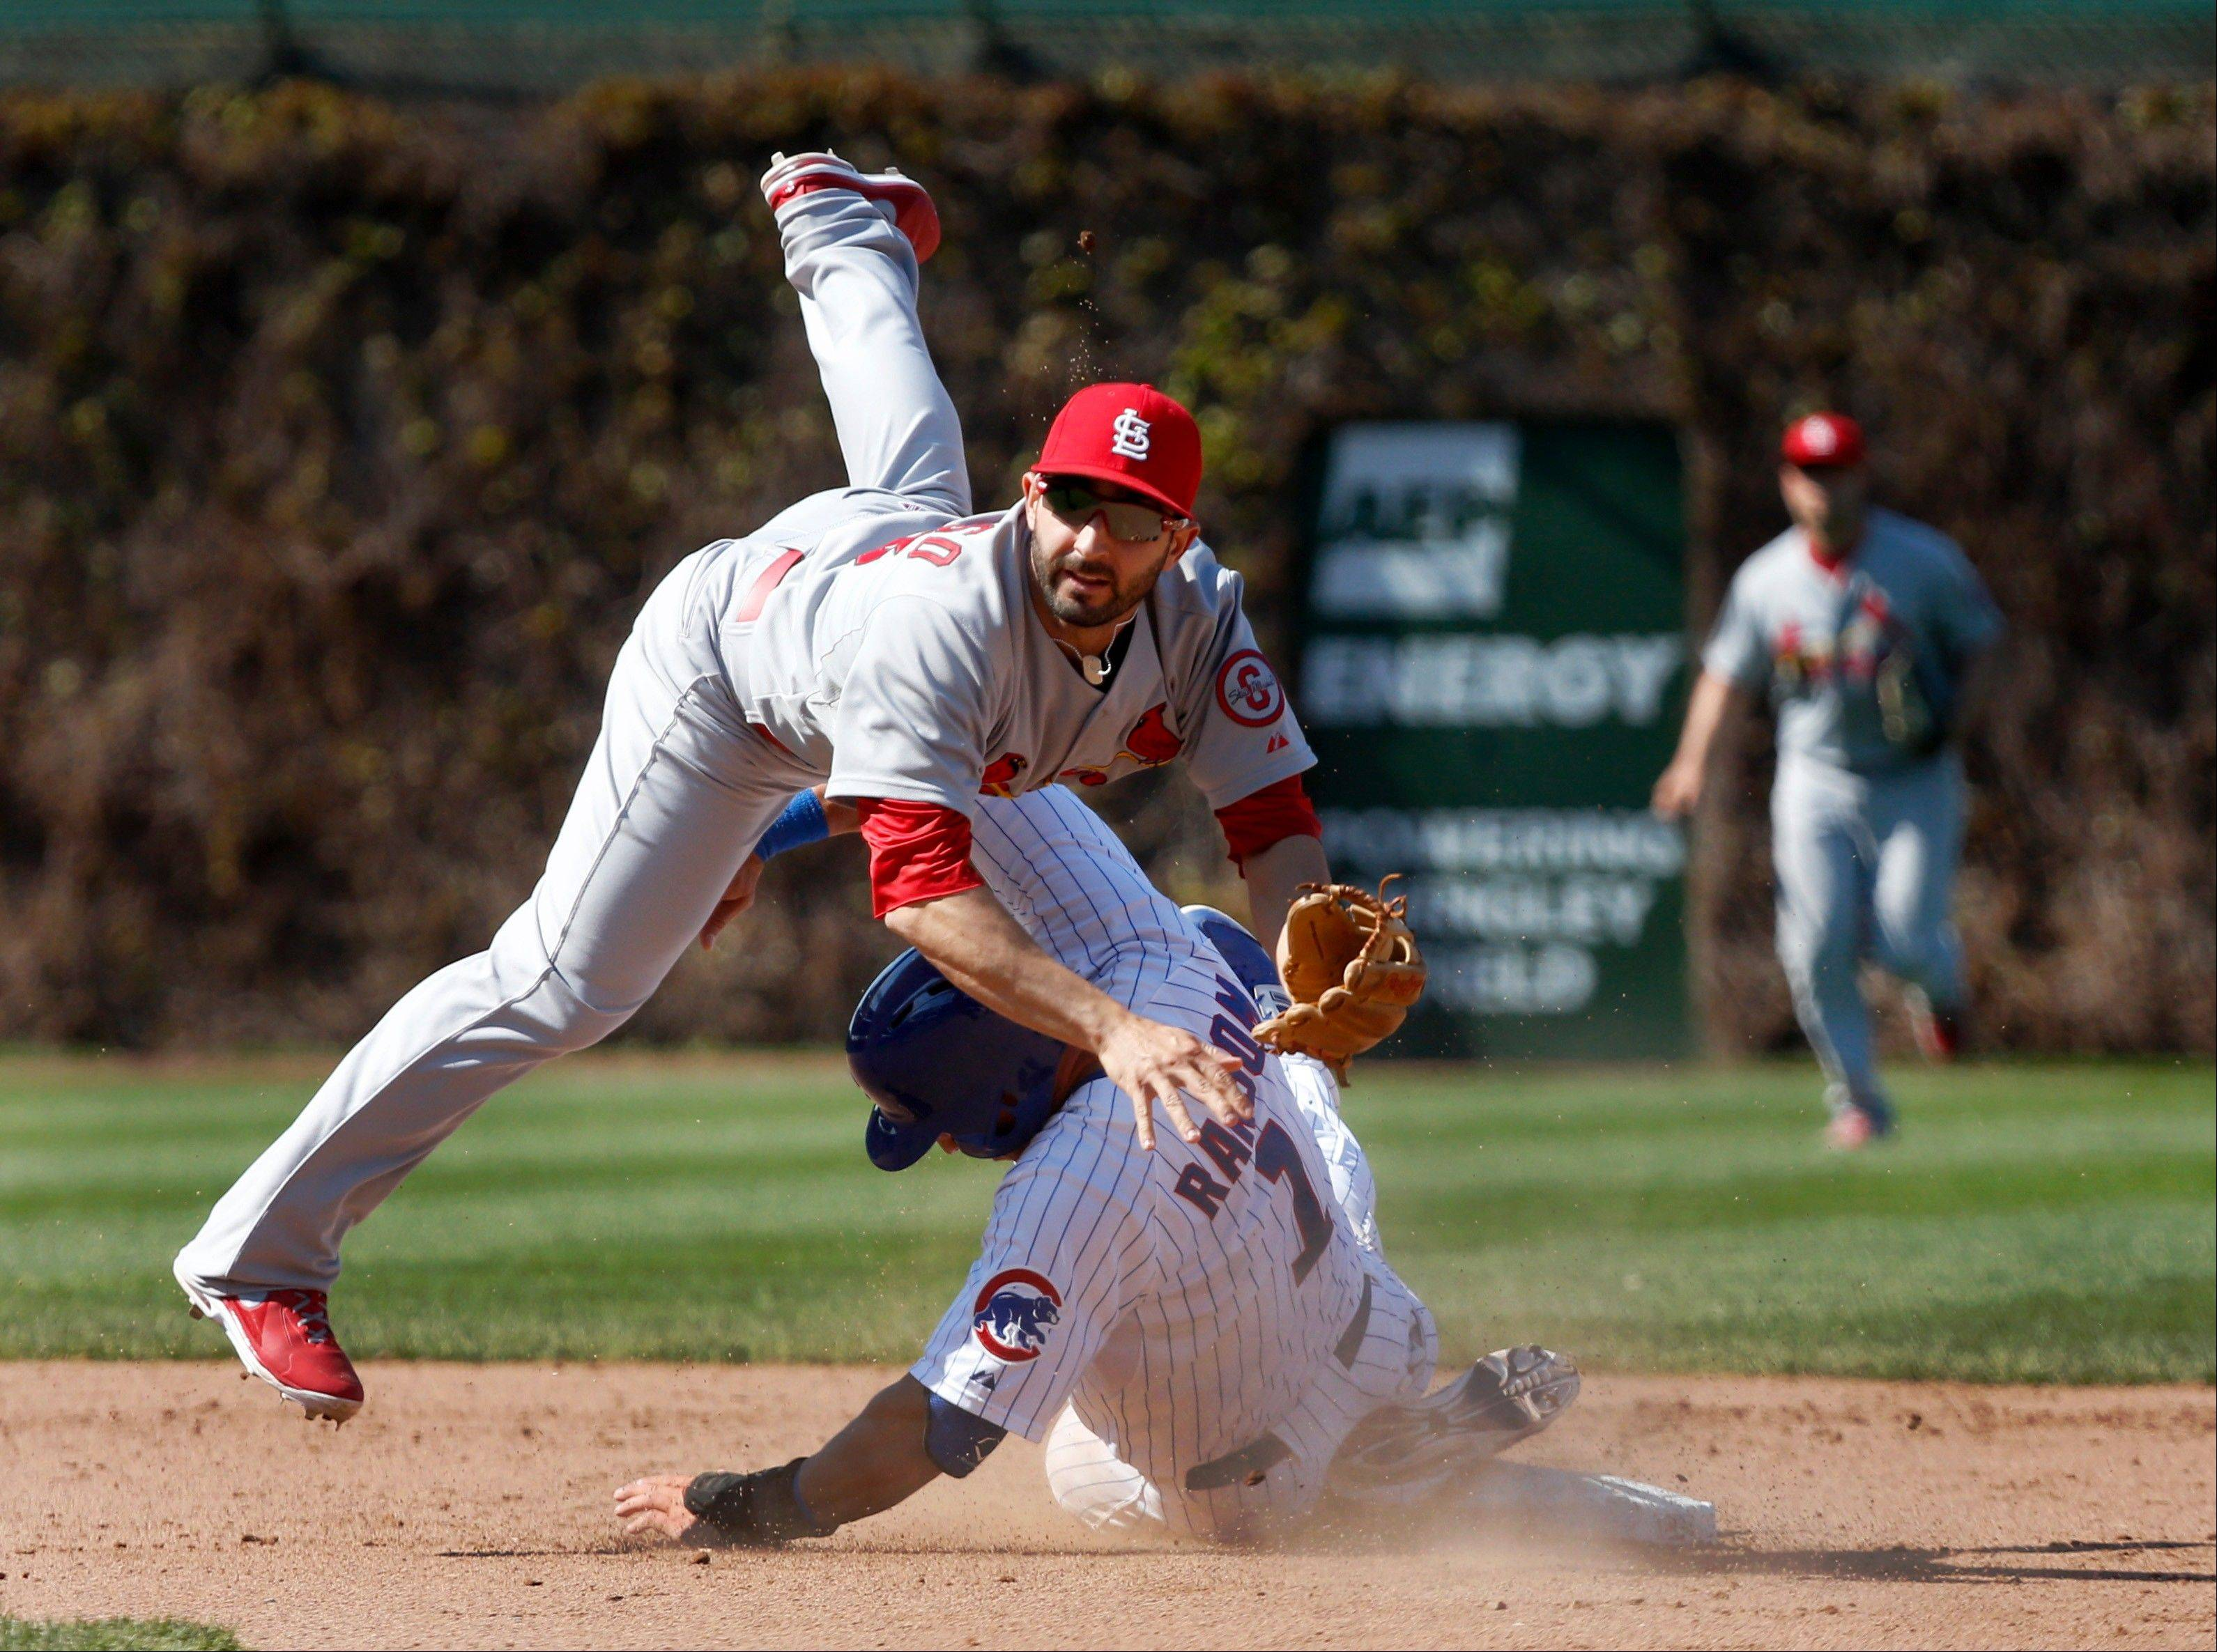 St. Louis Cardinals second baseman Daniel Descalso, top, turns the double play after forcing Chicago Cubs' Cody Ransom at second base during the seventh inning of a baseball game, Wednesday, May 8 2013, in Chicago. The Cubs' David DeJesus was out at first.